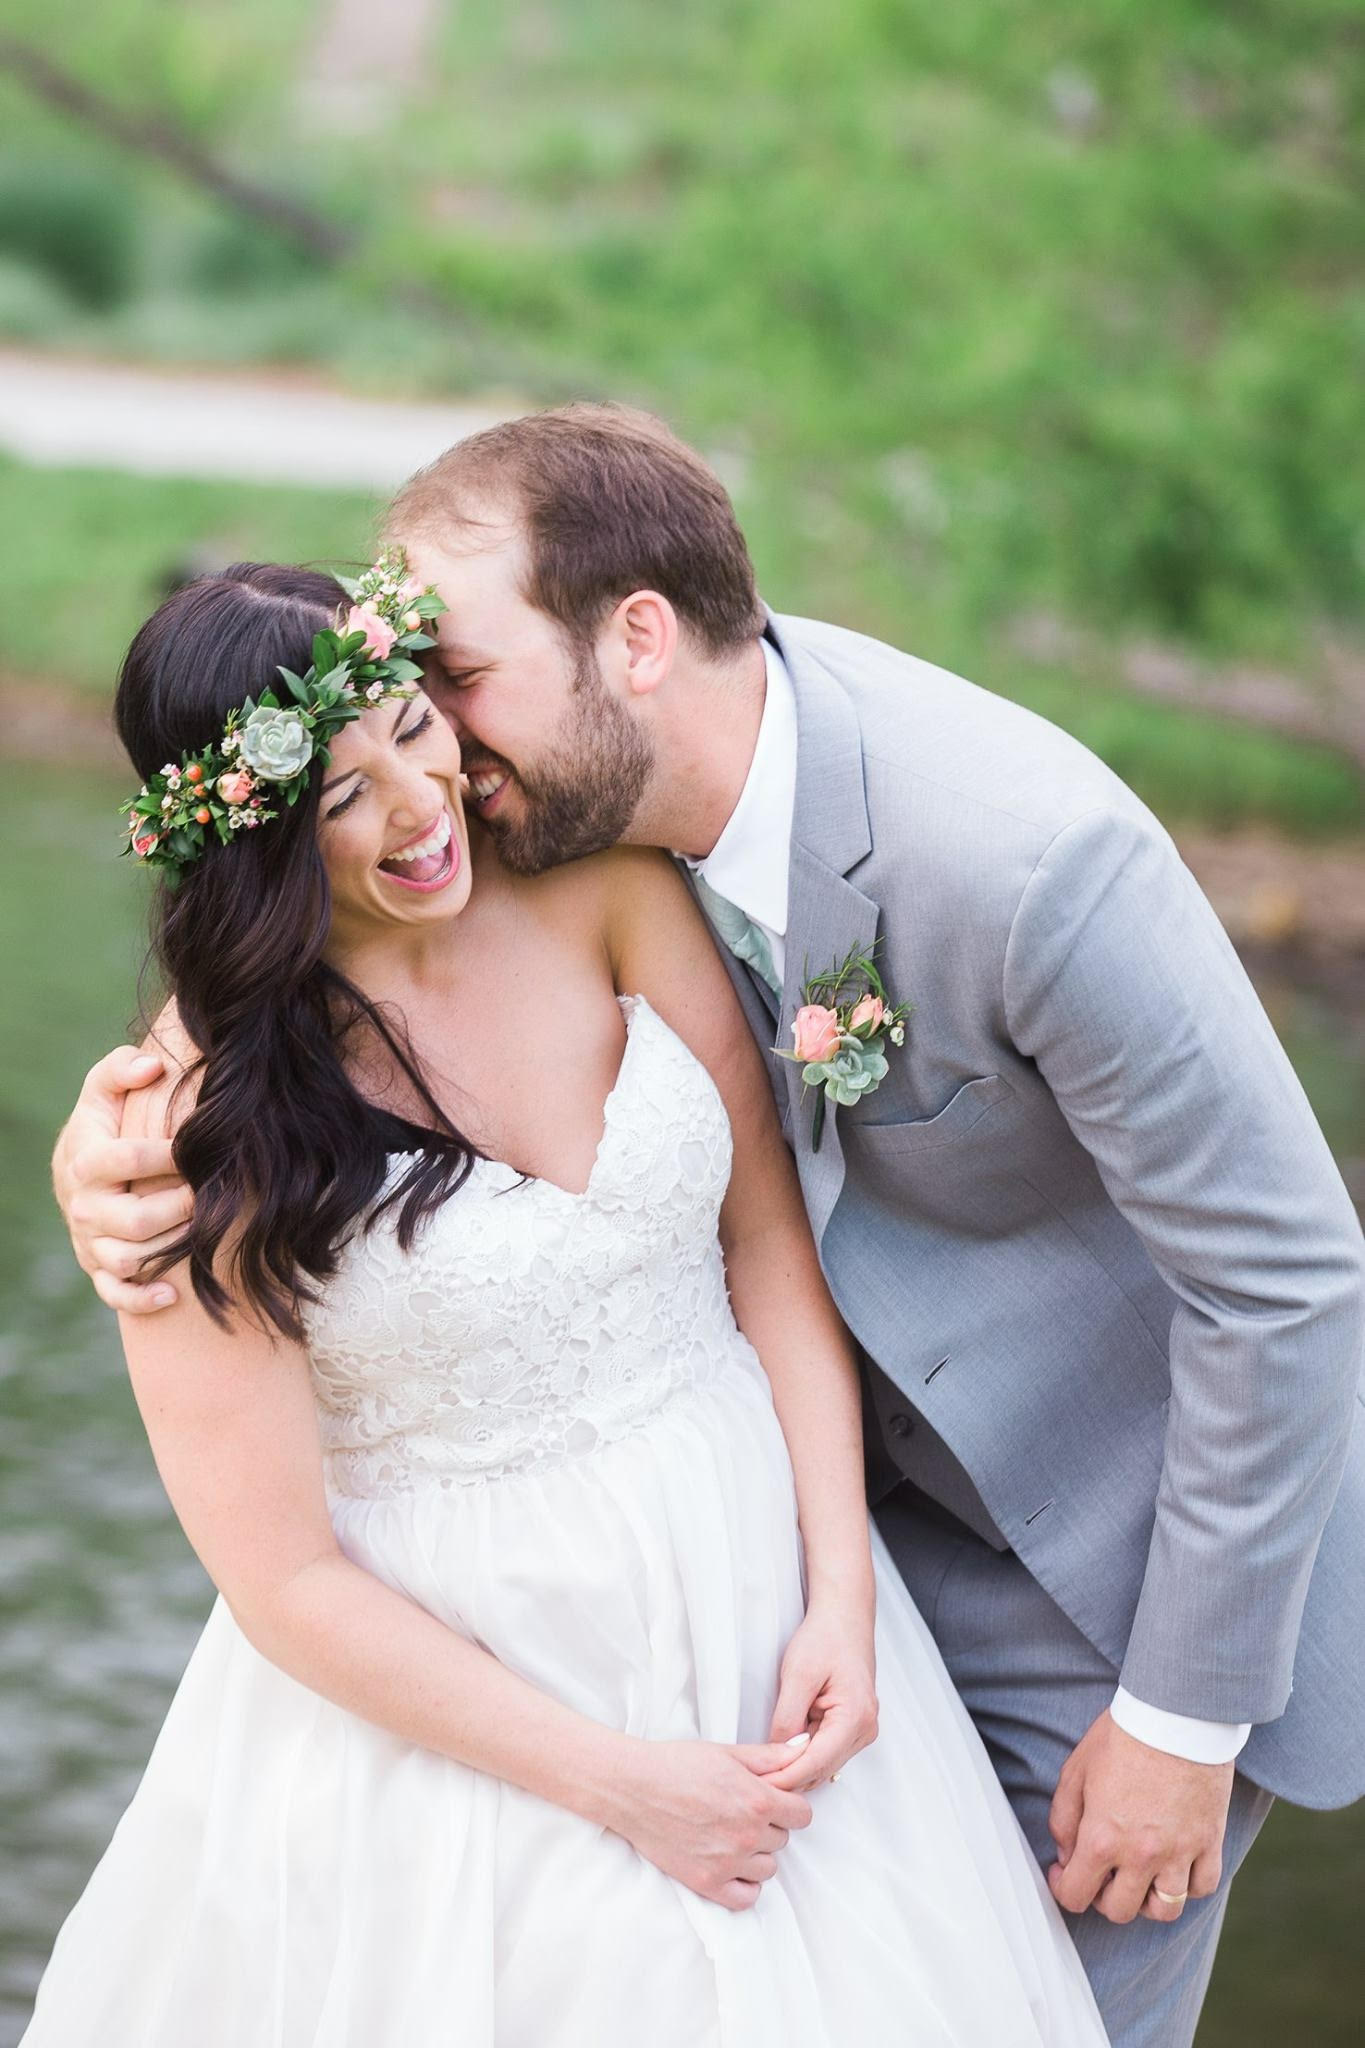 Bride wearing a flower crown over her loosely curled hair style laughs as her groom nuzzles into her ear.